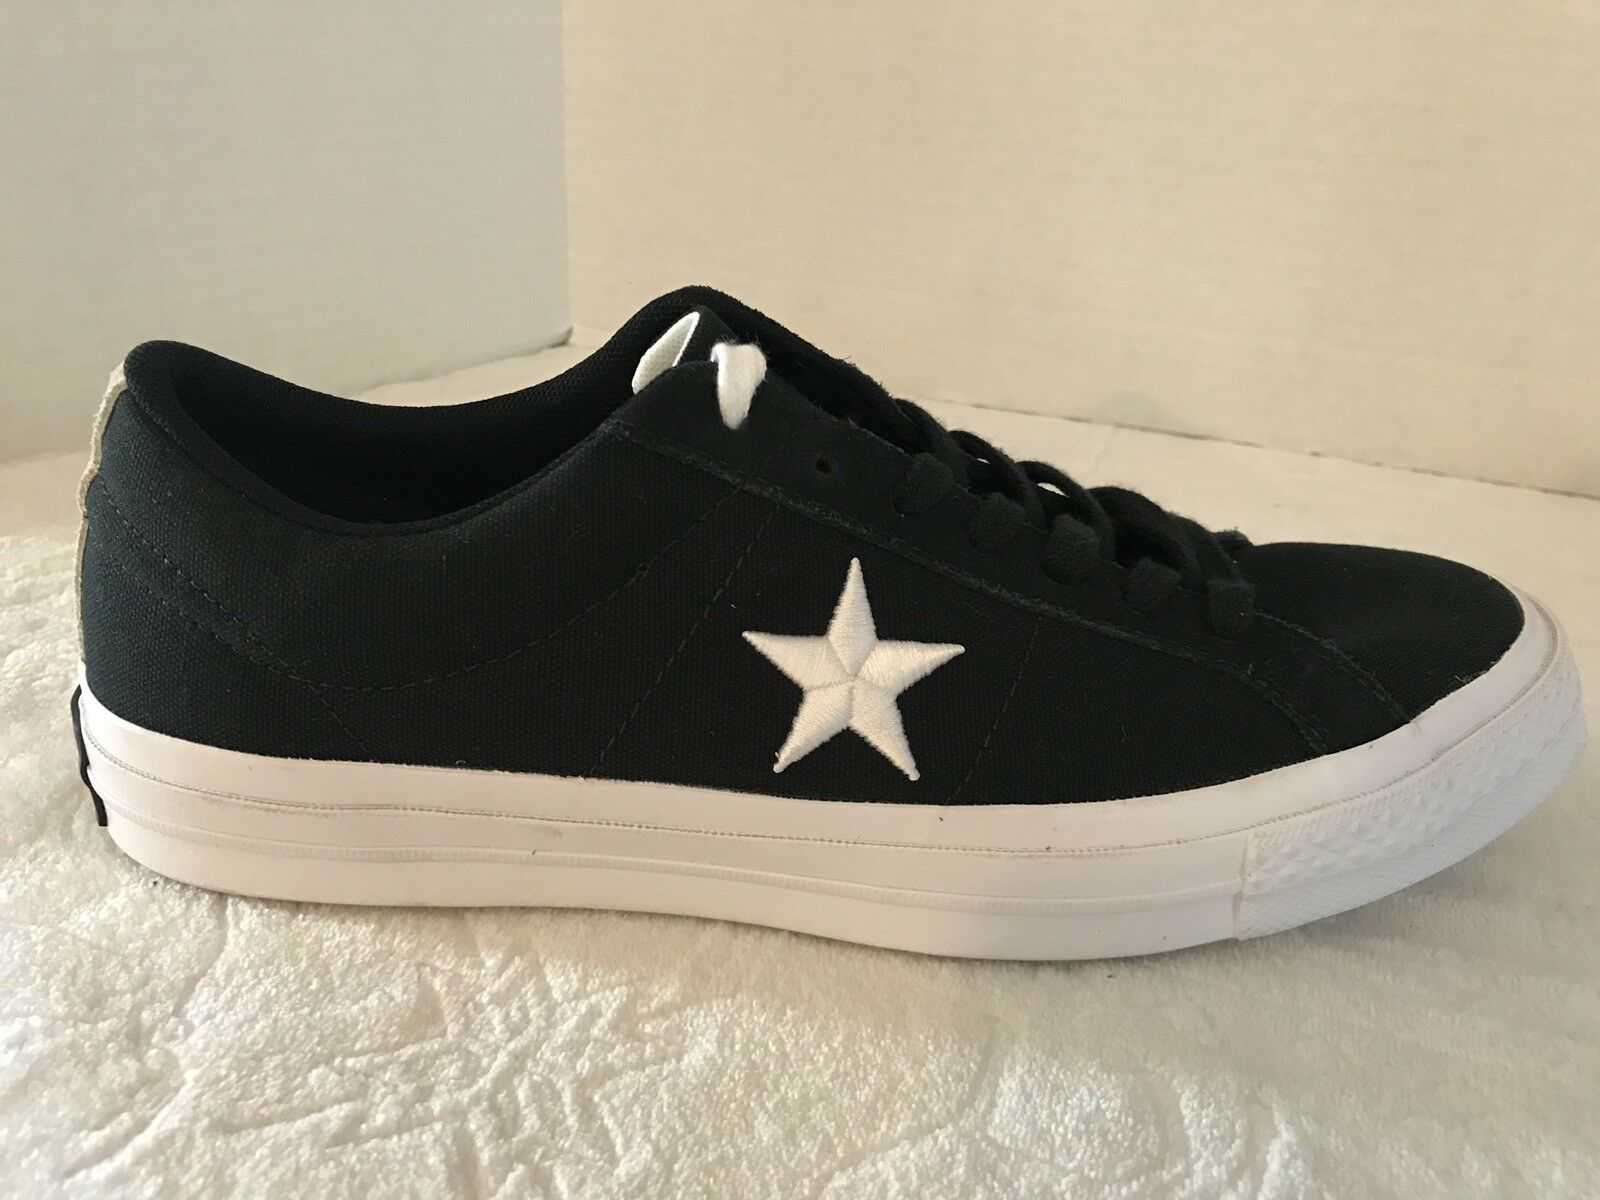 CONVERSE ONE STAR OX BLACK WHITE 160600C SIZE 9